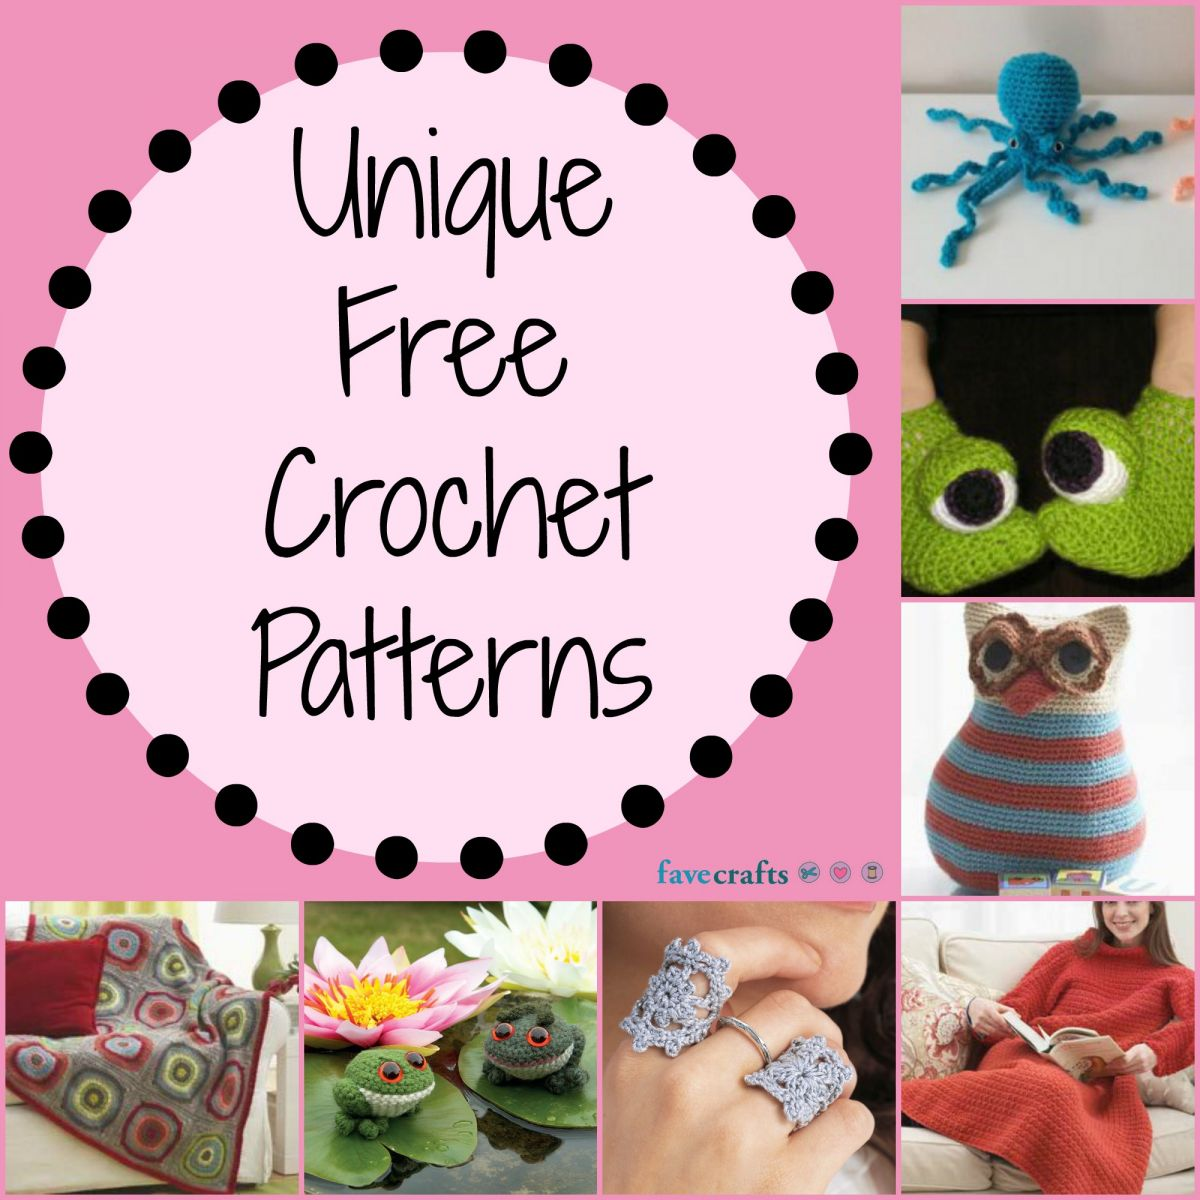 17 Unique Crochet Patterns